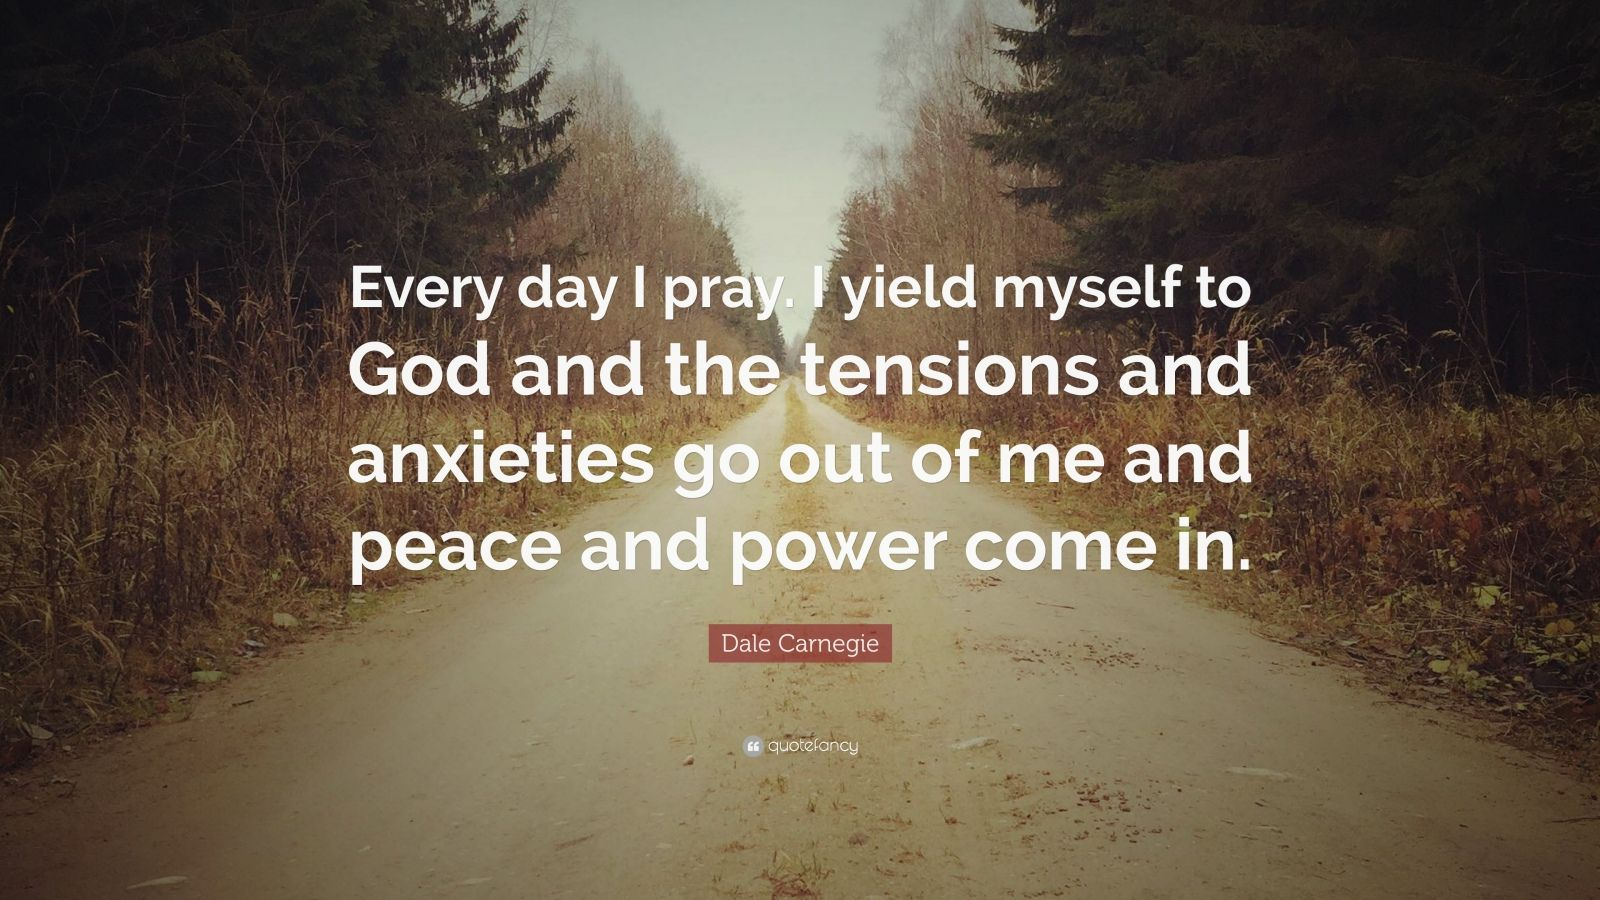 """Dale Carnegie Quote: """"Every day I pray. I yield myself to God and the tensions and anxieties go out of me and peace and power come in."""""""